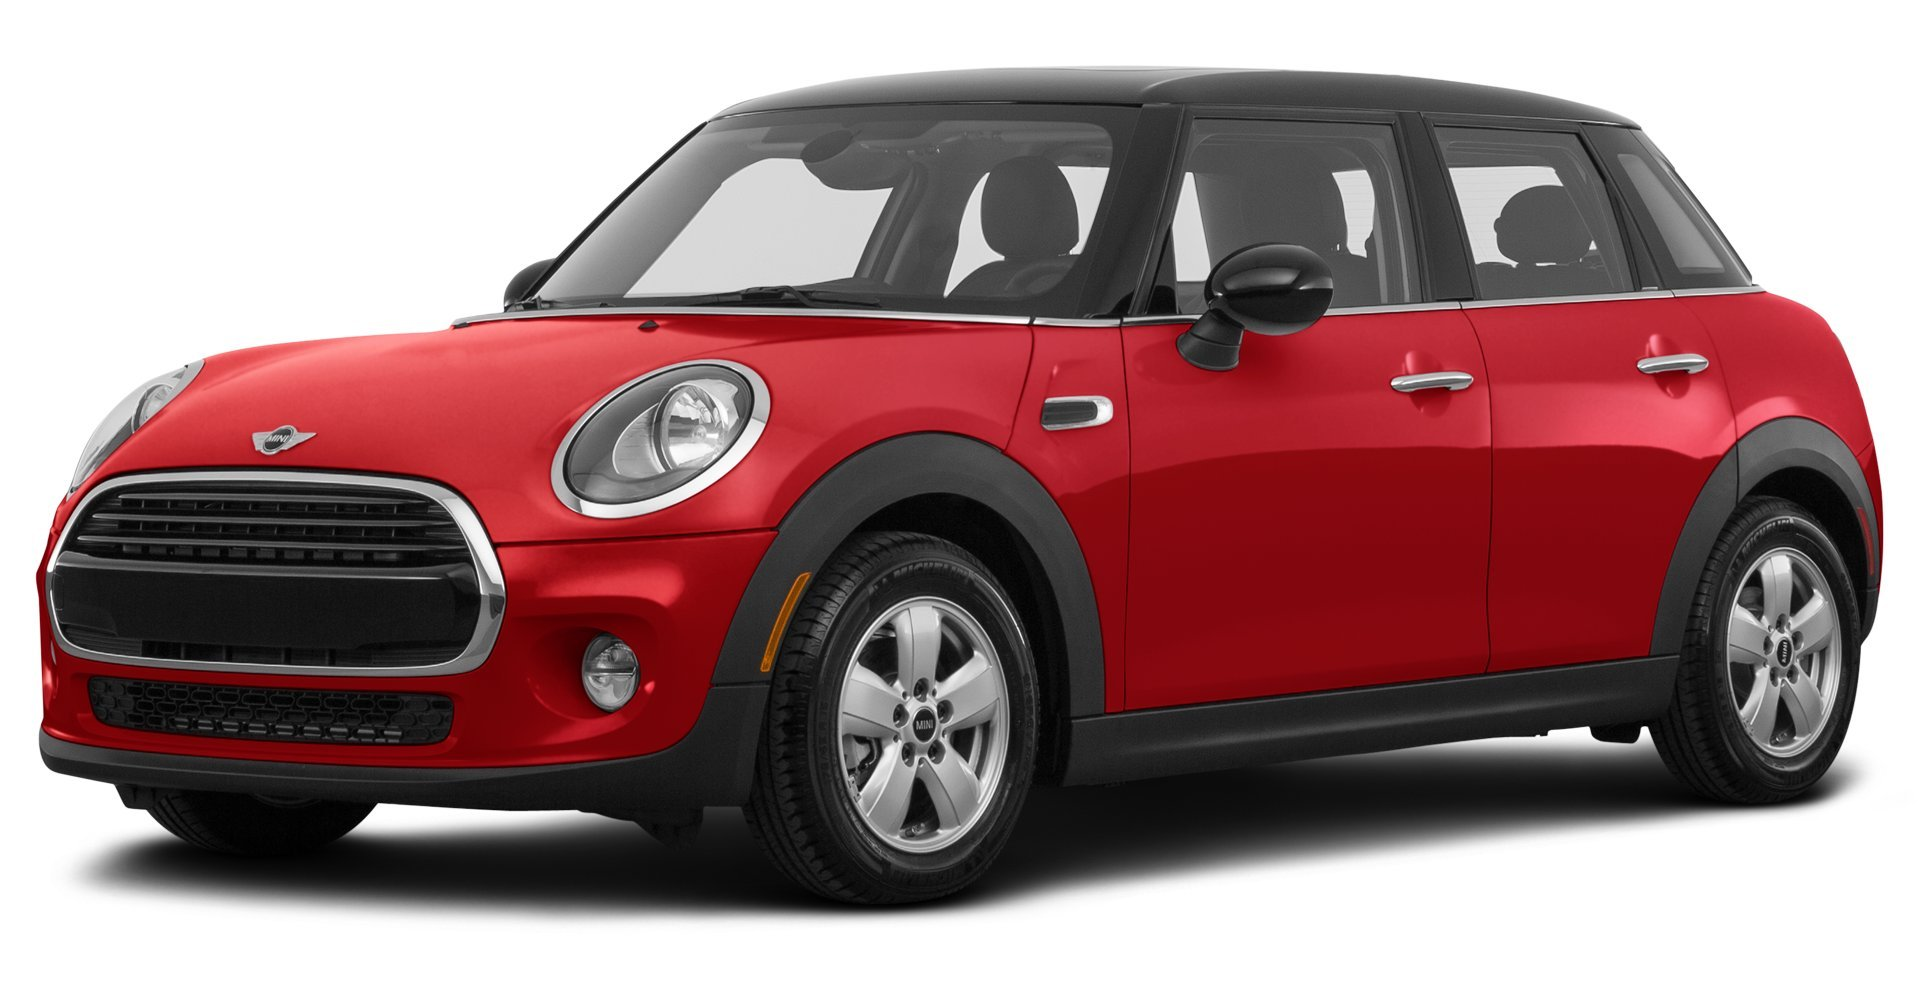 2016 mini cooper reviews images and specs vehicles. Black Bedroom Furniture Sets. Home Design Ideas